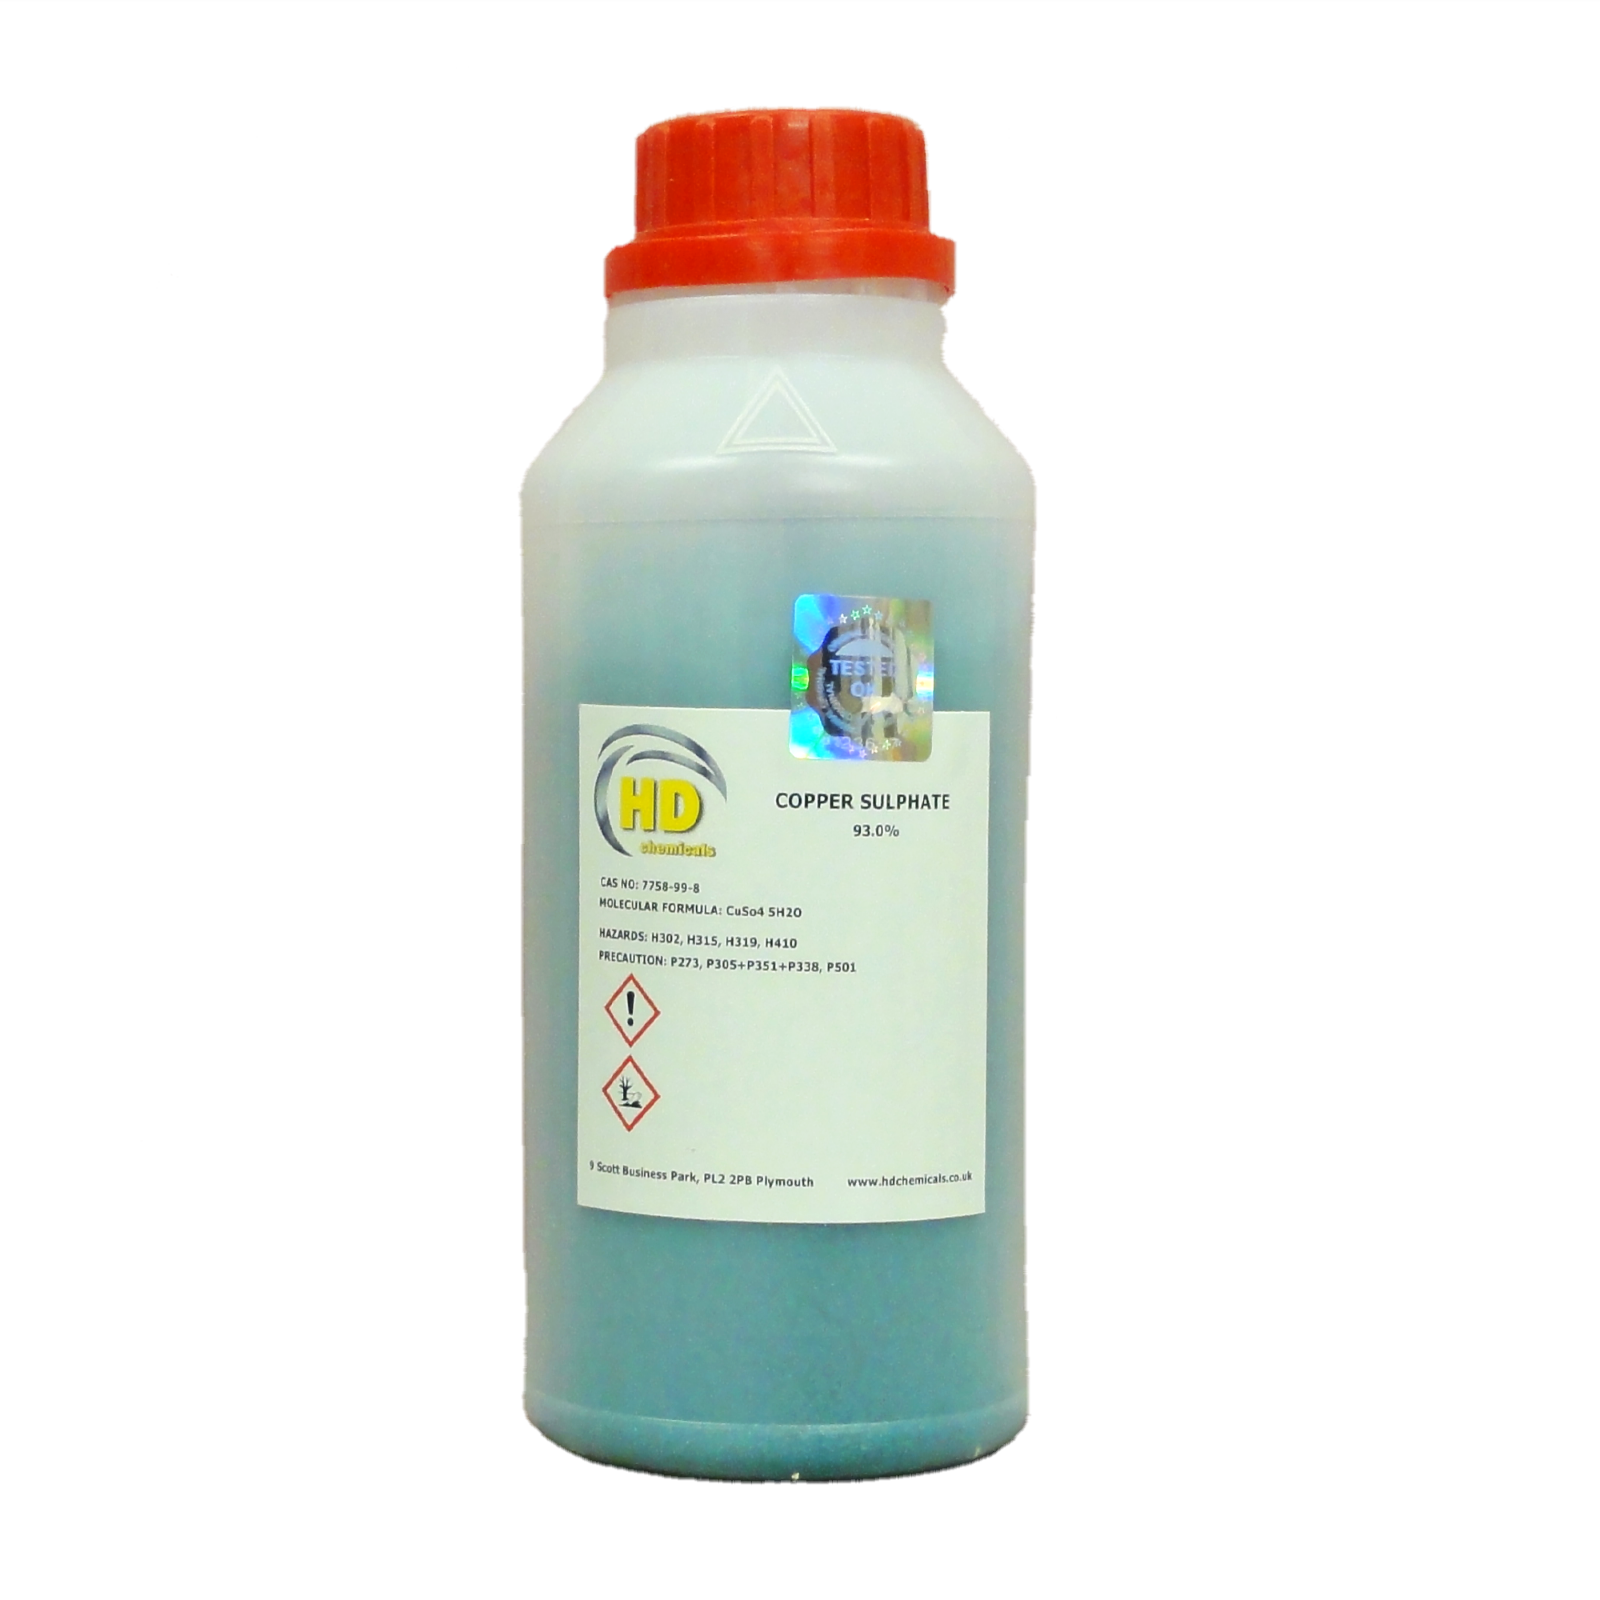 Details about Copper Sulphate * QUALITY PRODUCT * FREE POSTAGE * HDPE  BOTTLE *CRYSTALS *